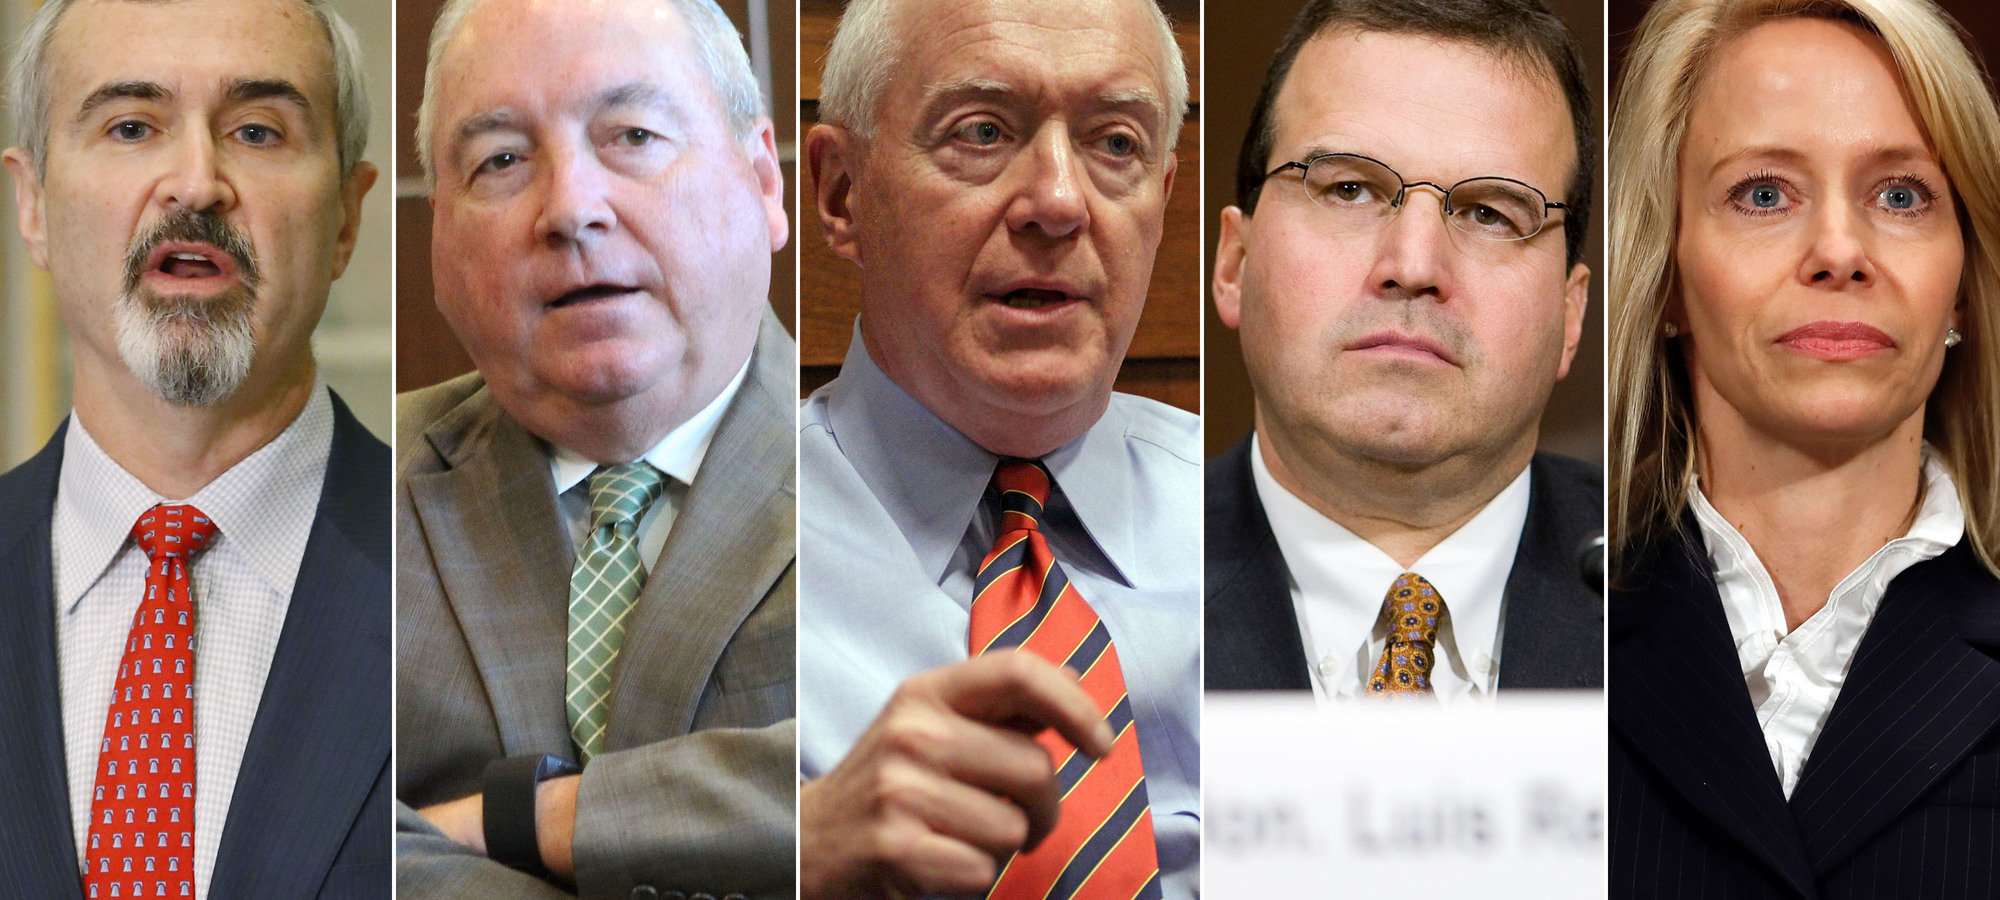 From left, John G. Malcolm, Judge K. Michael Moore, Judge Henry E. Hudson, Judge Luis Felipe Restrepo, and Judge Claria Horn Boom have been nominated by President Trump to fill the five empty spots on the U.S. Sentencing Commission.